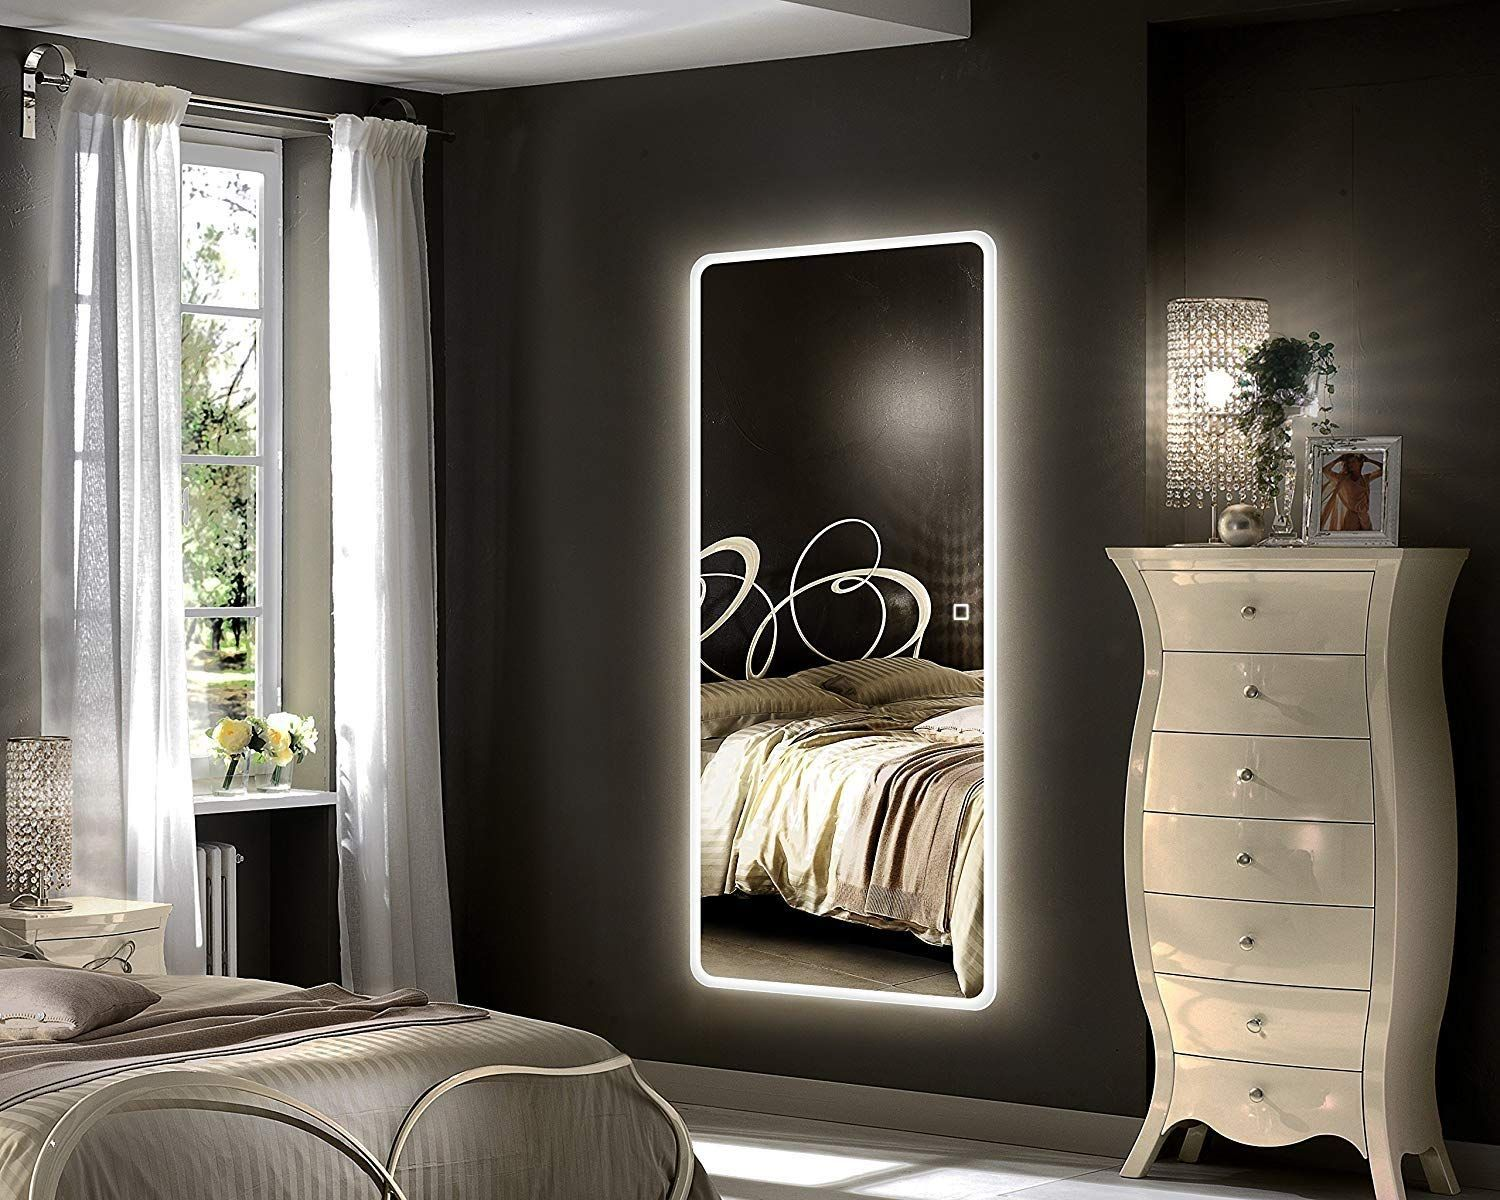 Elegant And Space Saving Led Wall Mirror Smallspaces Mirrors